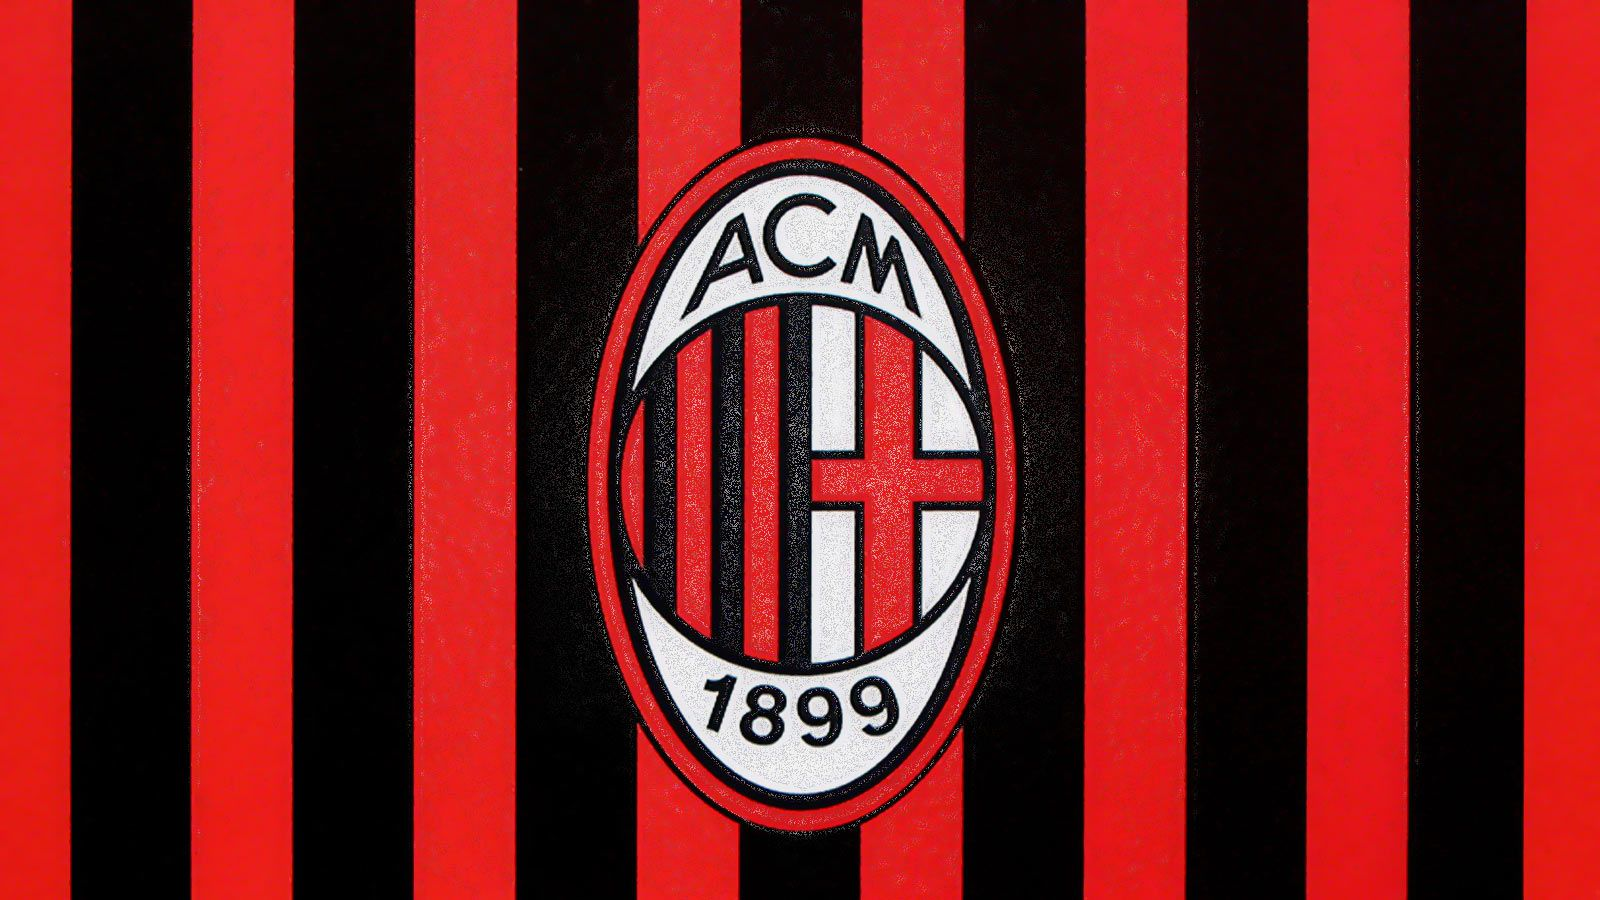 Hd wallpaper ac milan - Ac Milan Wallpaper Wallpapersafari Sa Milan Pinterest Ac Milan And Milan